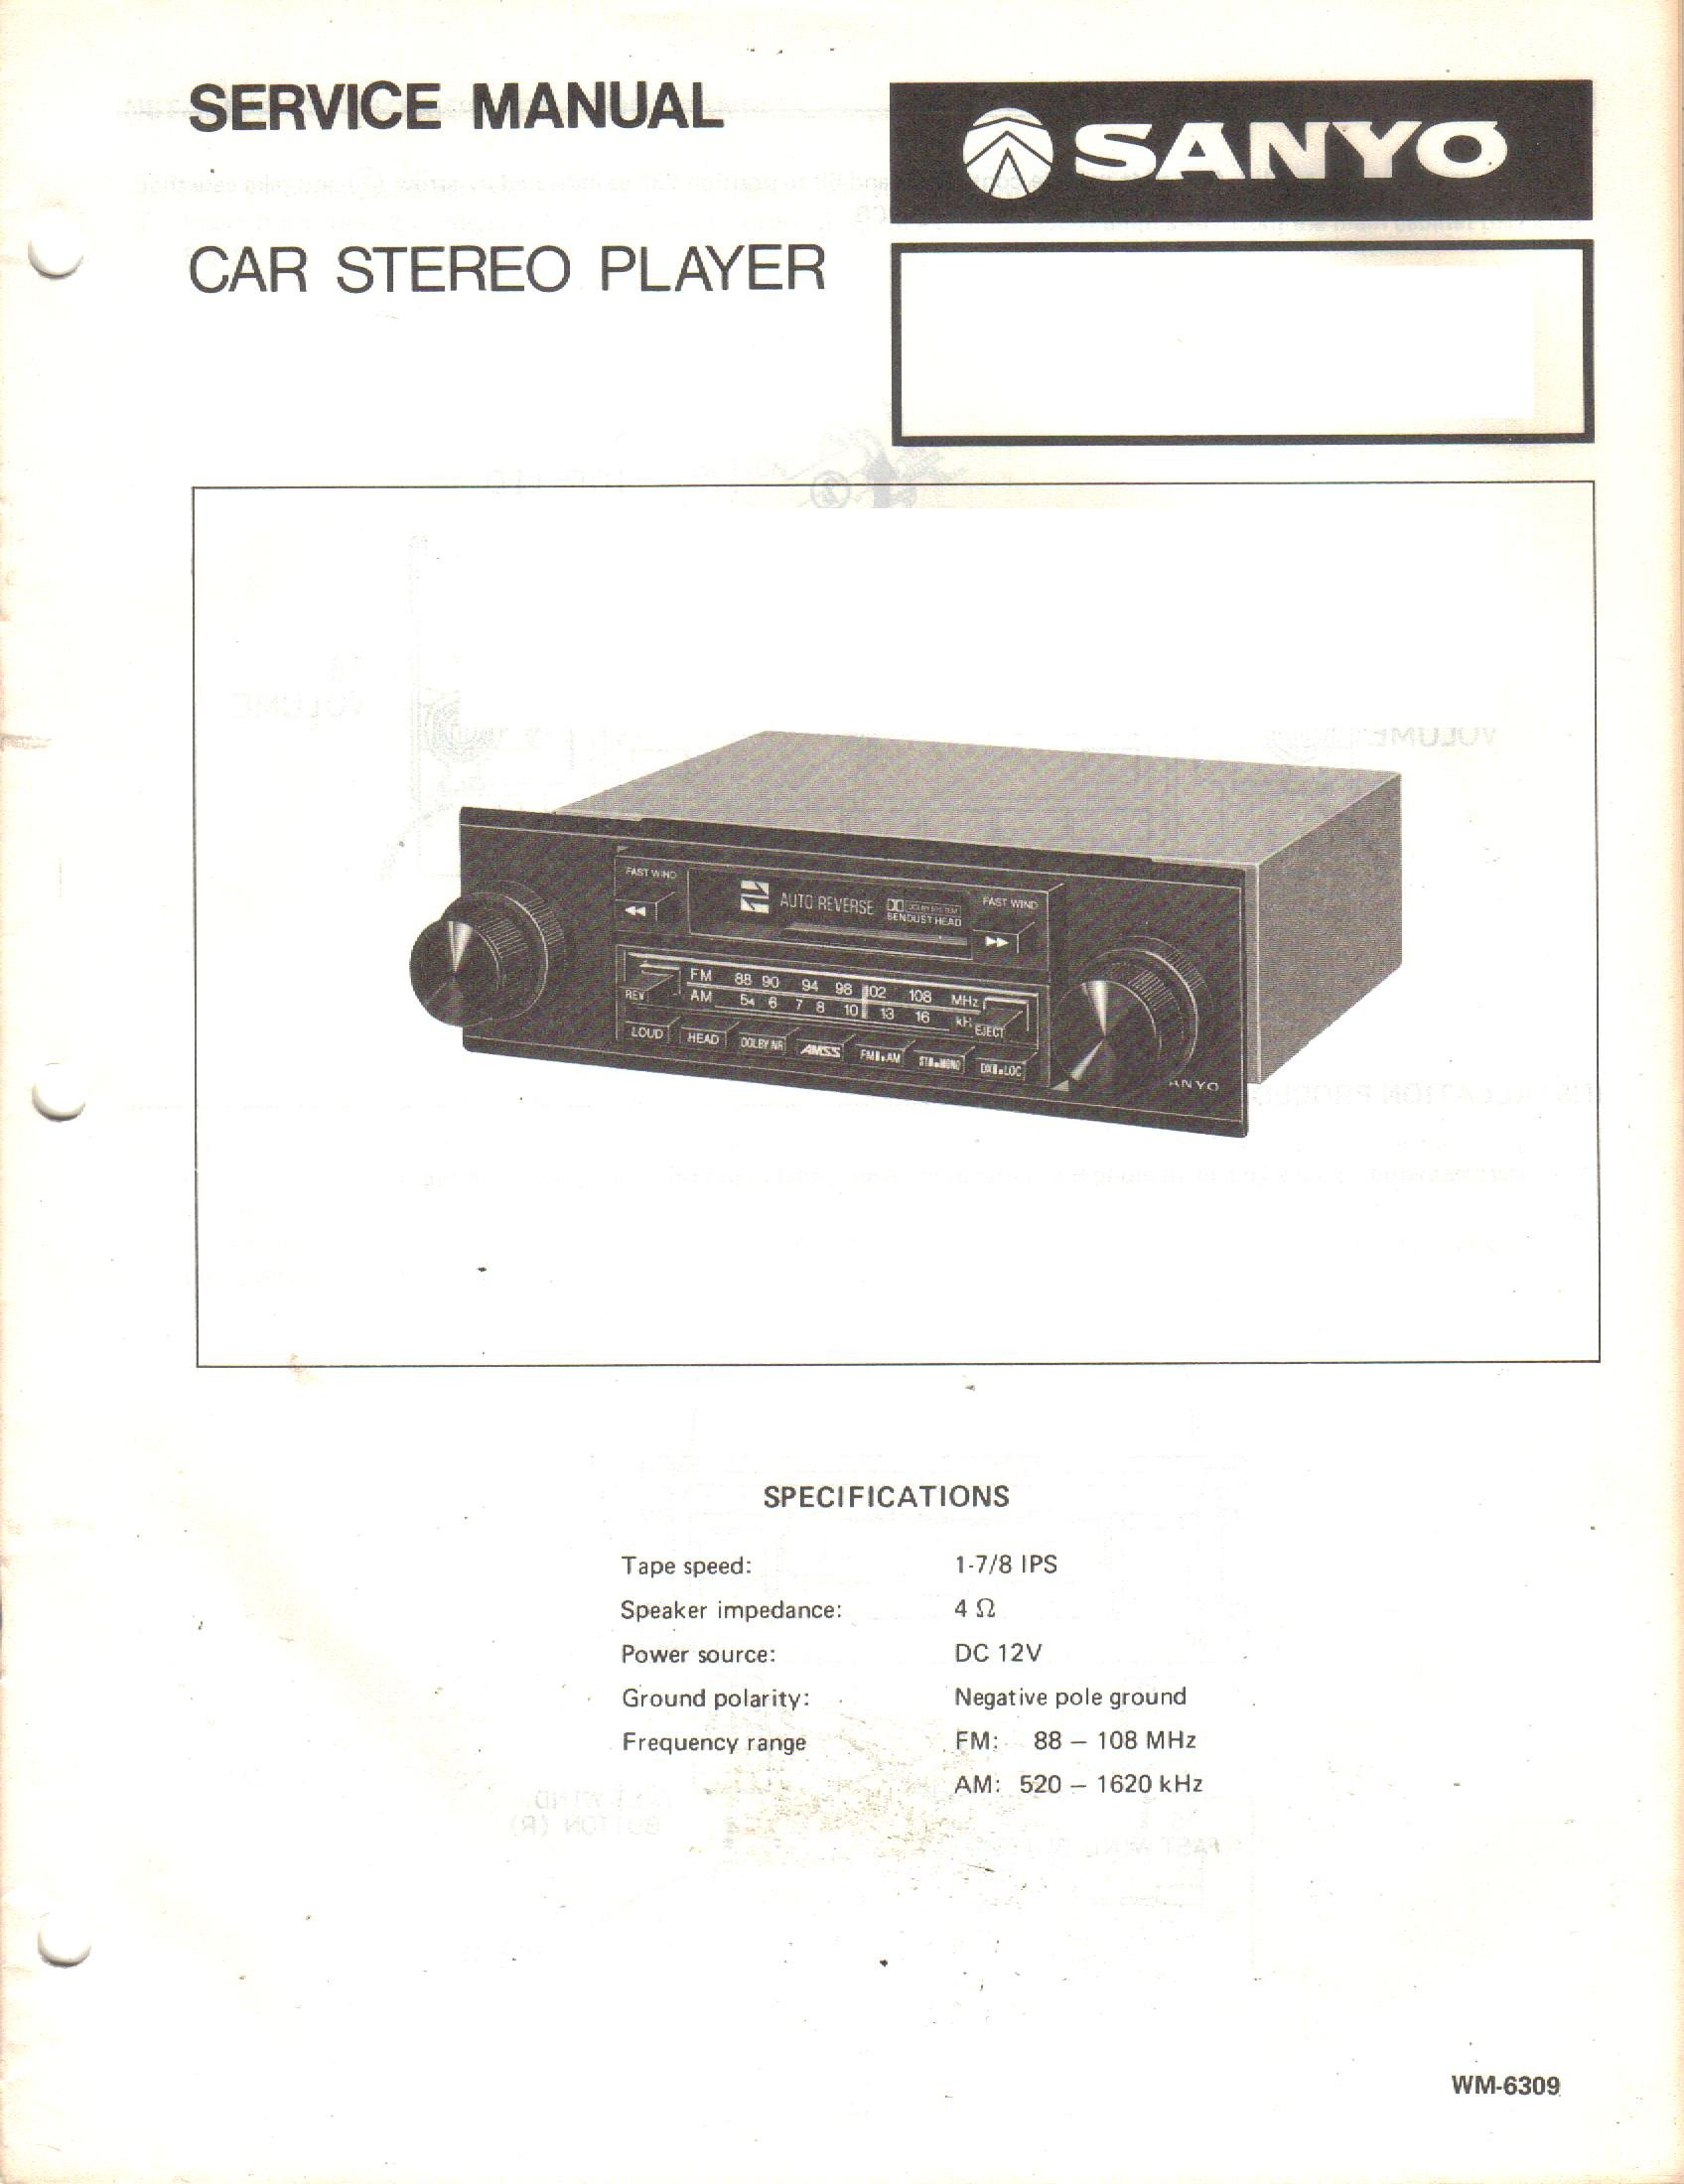 Sanyo FT867 FT 867 8-Track Car Stereo Player Service Manual: Sanyo on electrical diagrams, electronic circuit diagrams, auto starter, auto diagnostics, auto lighting, auto frame diagrams, auto wiring symbols, car audio install diagrams, blank diagrams, auto air conditioning diagrams, auto steering diagrams, auto tools, auto rear axle, zenith carburetors diagrams, auto blueprints, auto interior diagrams, auto transmission, auto schematics, chevy truck diagrams, auto chassis,